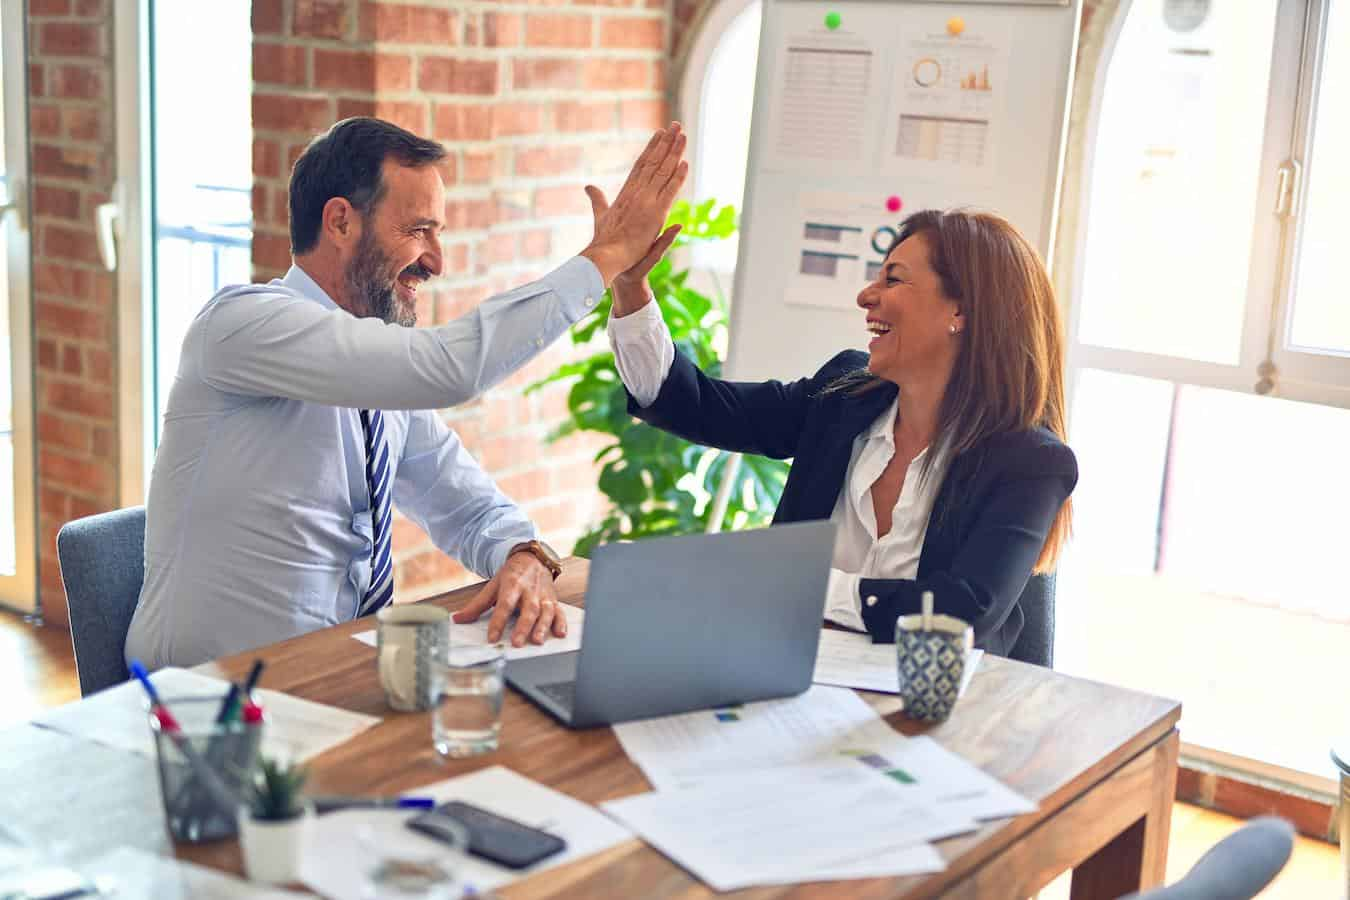 How To Build Relationships With Employees